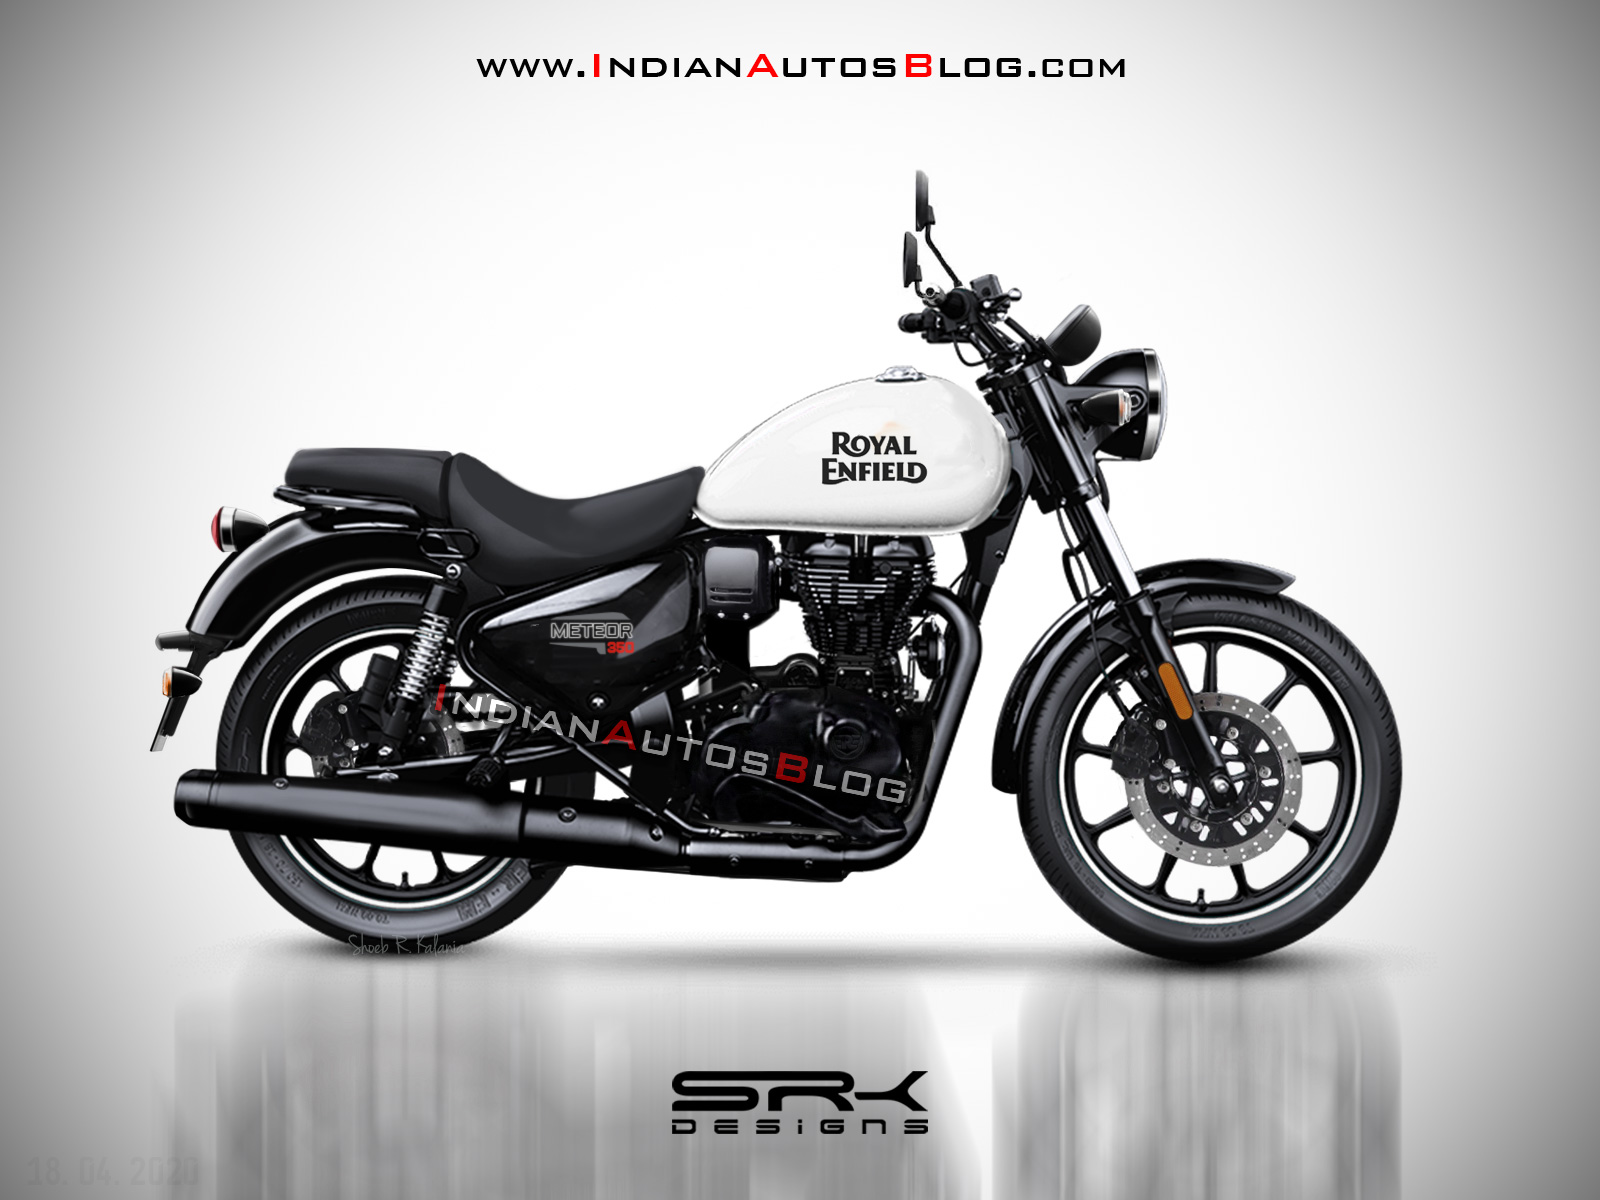 Royal Enfield Meteor 350 Price Features And Every Detail Leaked So Far